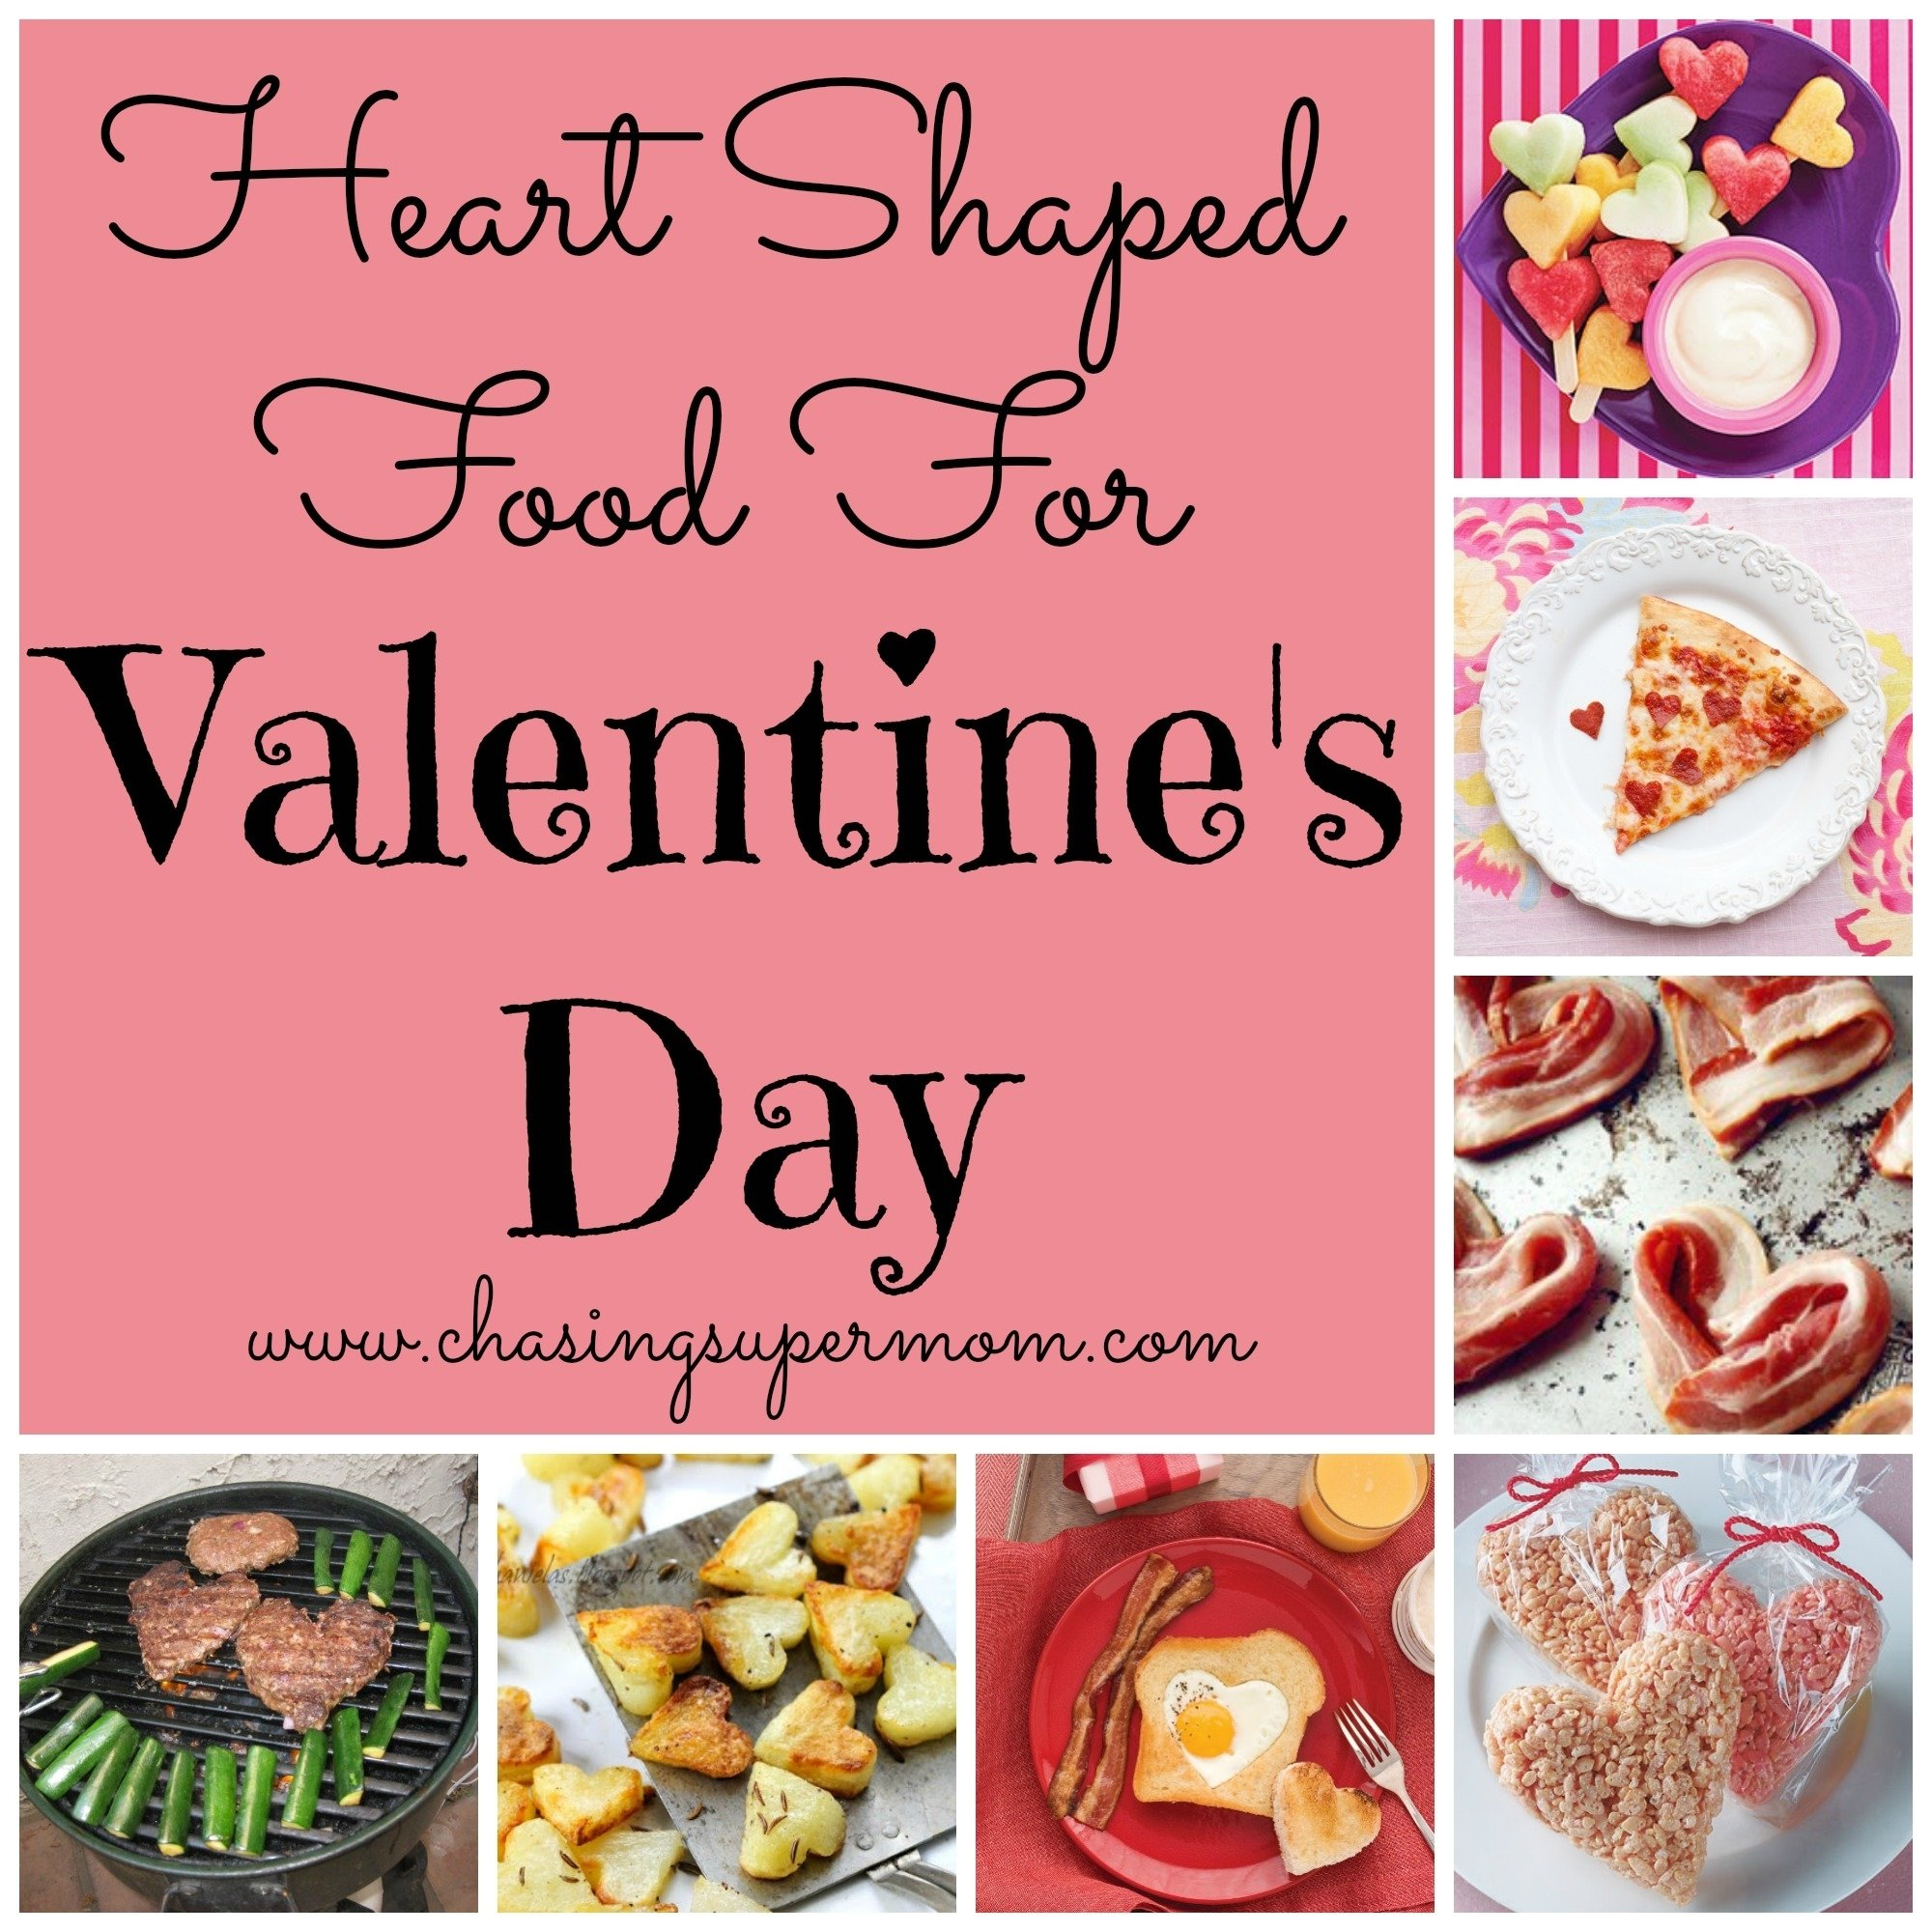 10 Awesome Food Day At Work Ideas valentines day food ideas heart shaped food chasing supermom 1